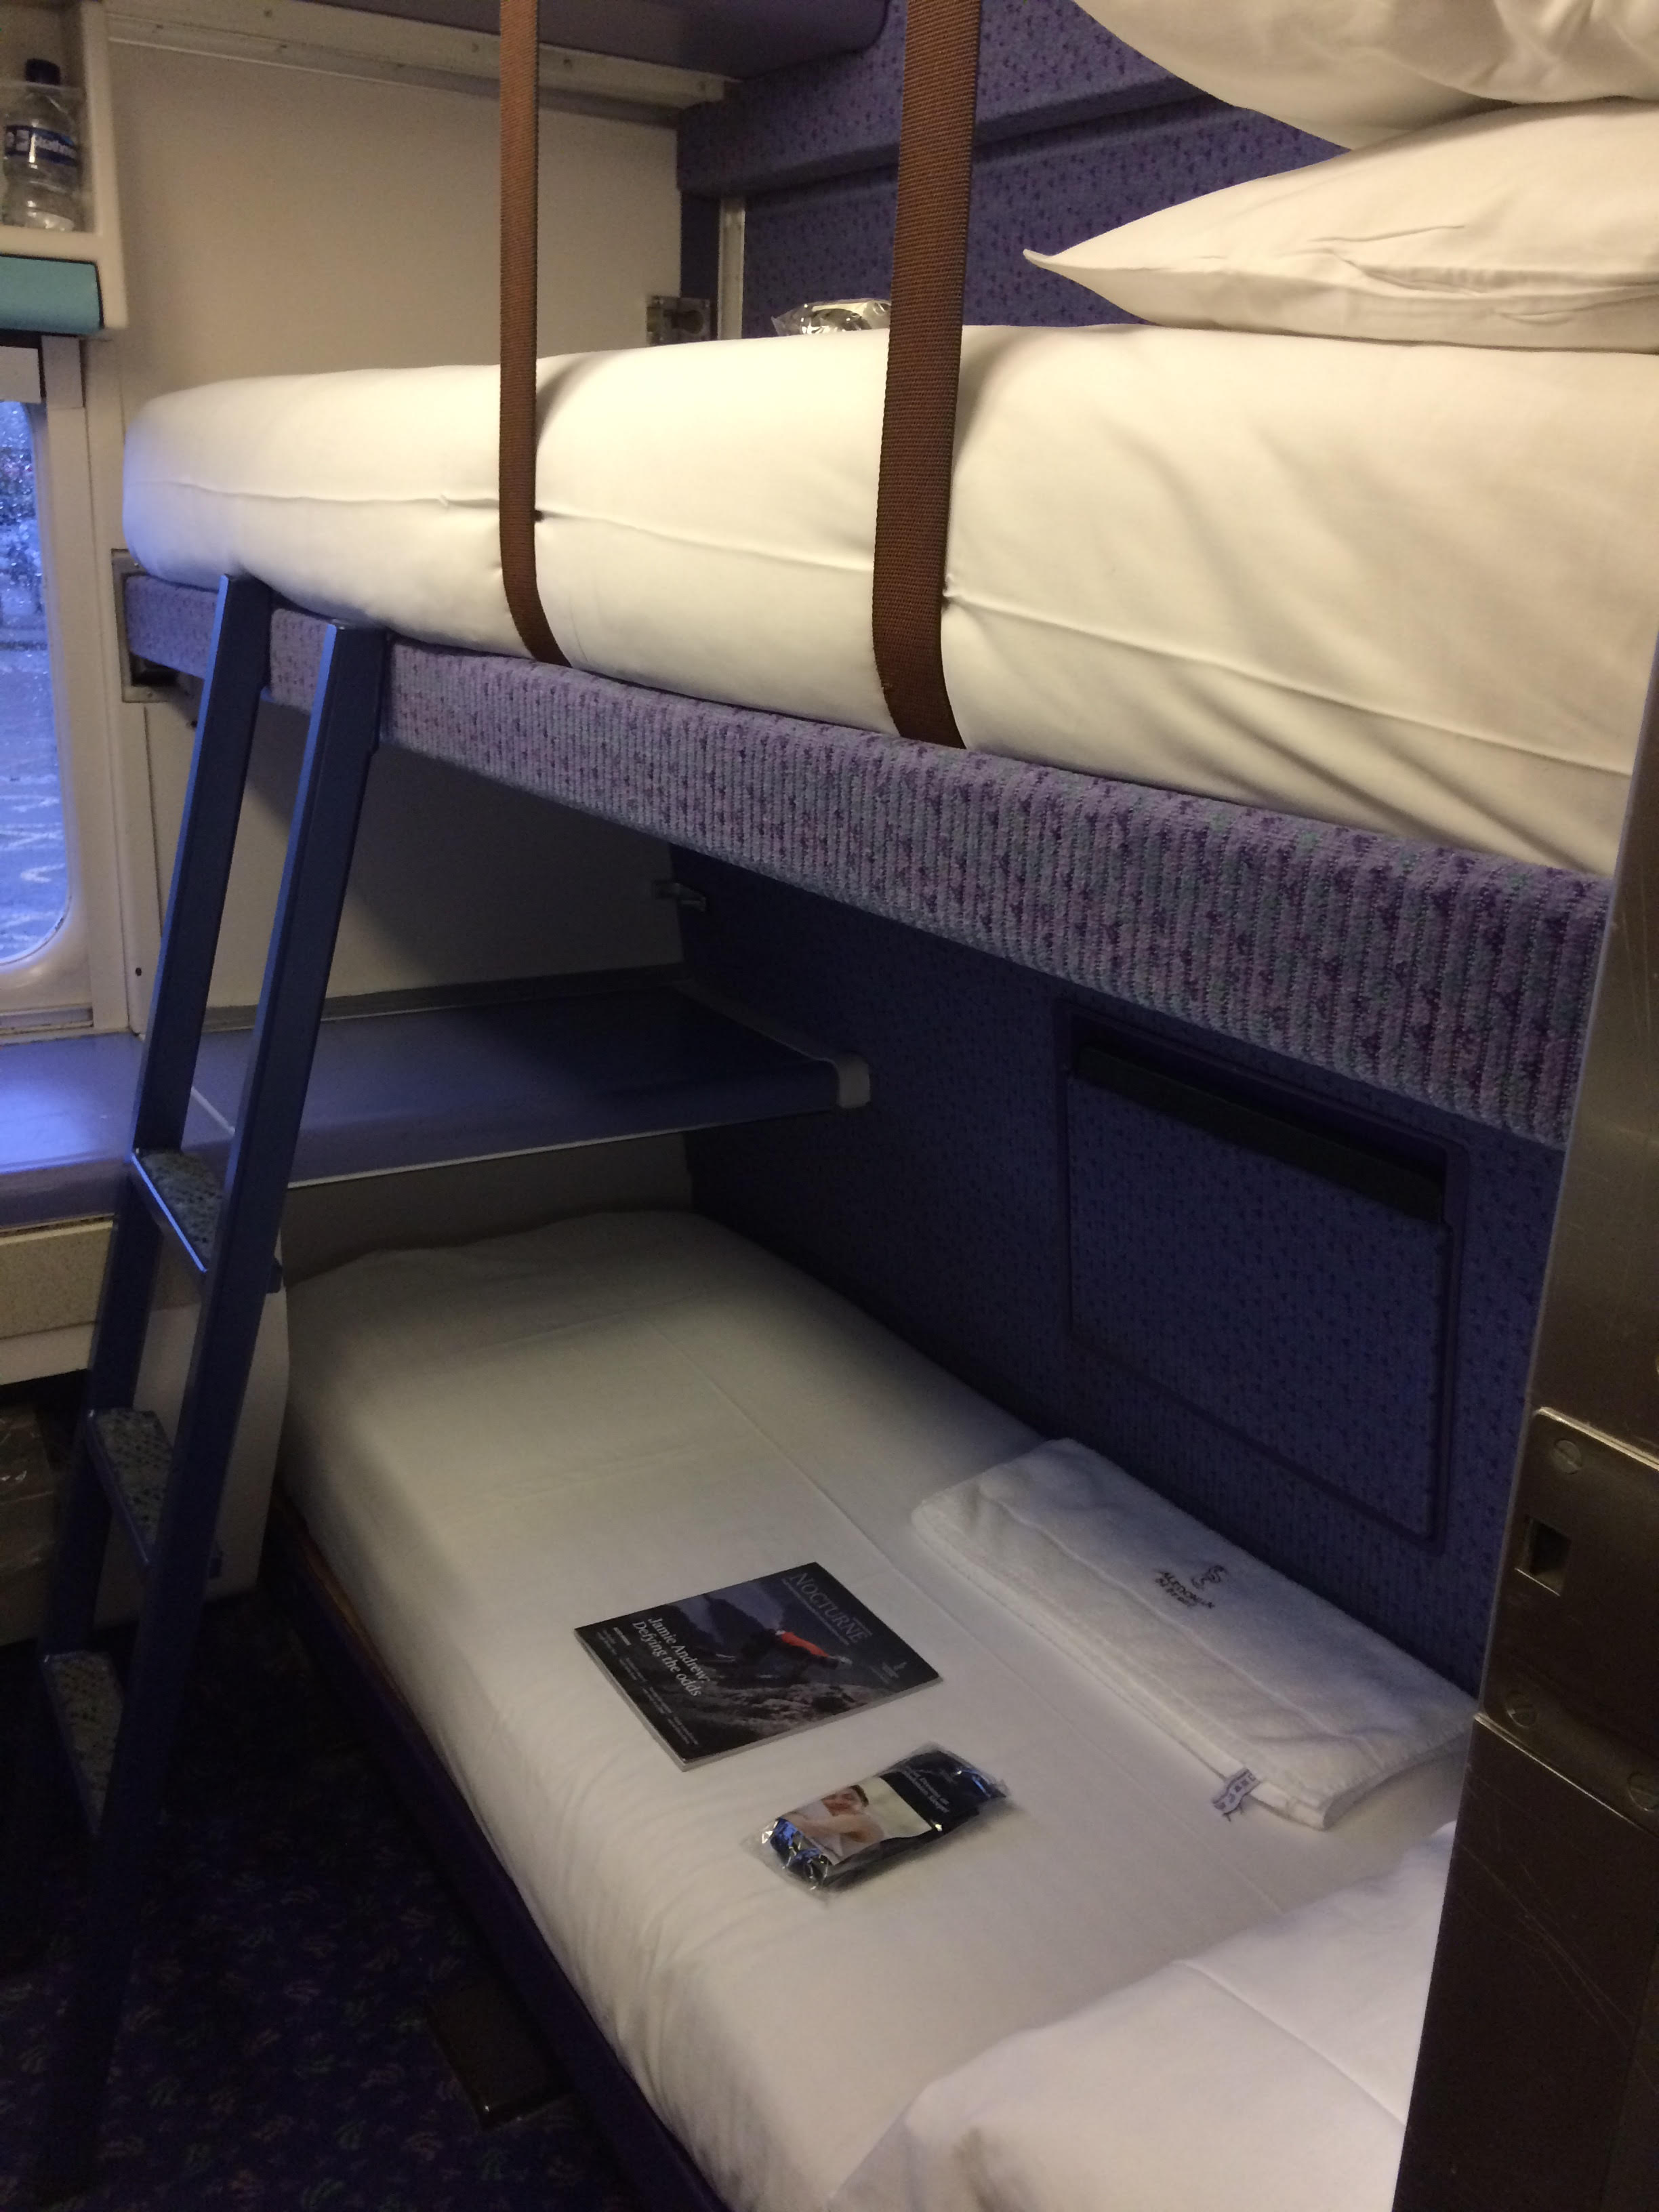 Slaapcoupé in de Caledonian Sleeper ©Noord West Express